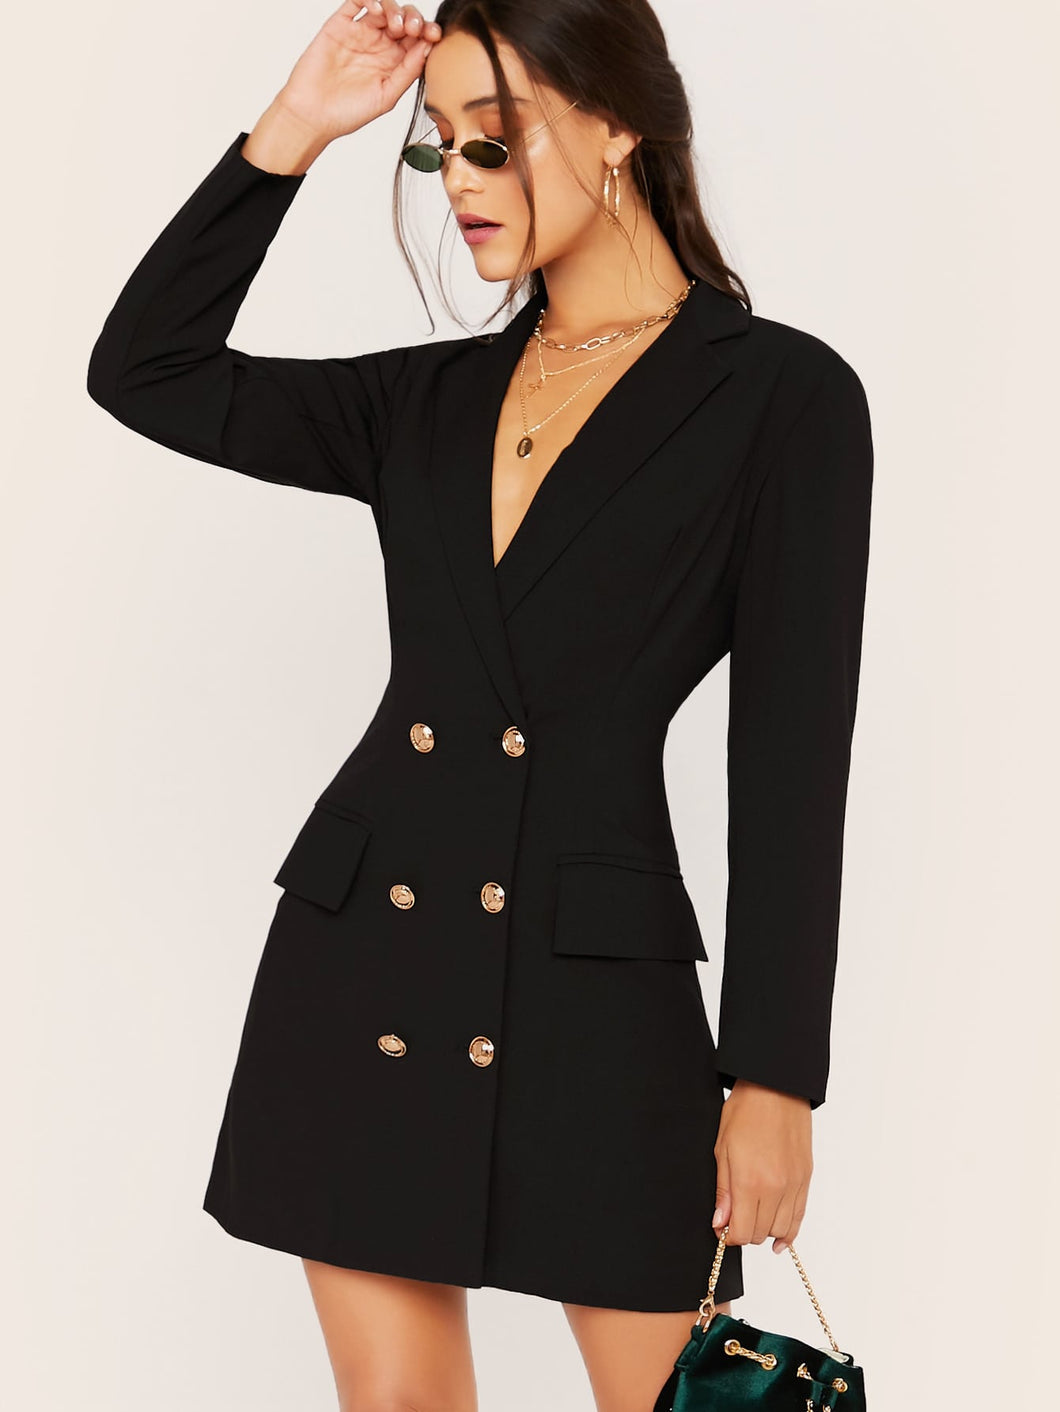 DRESS Notched Collar Double Breasted Blazer Dress - EK CHIC